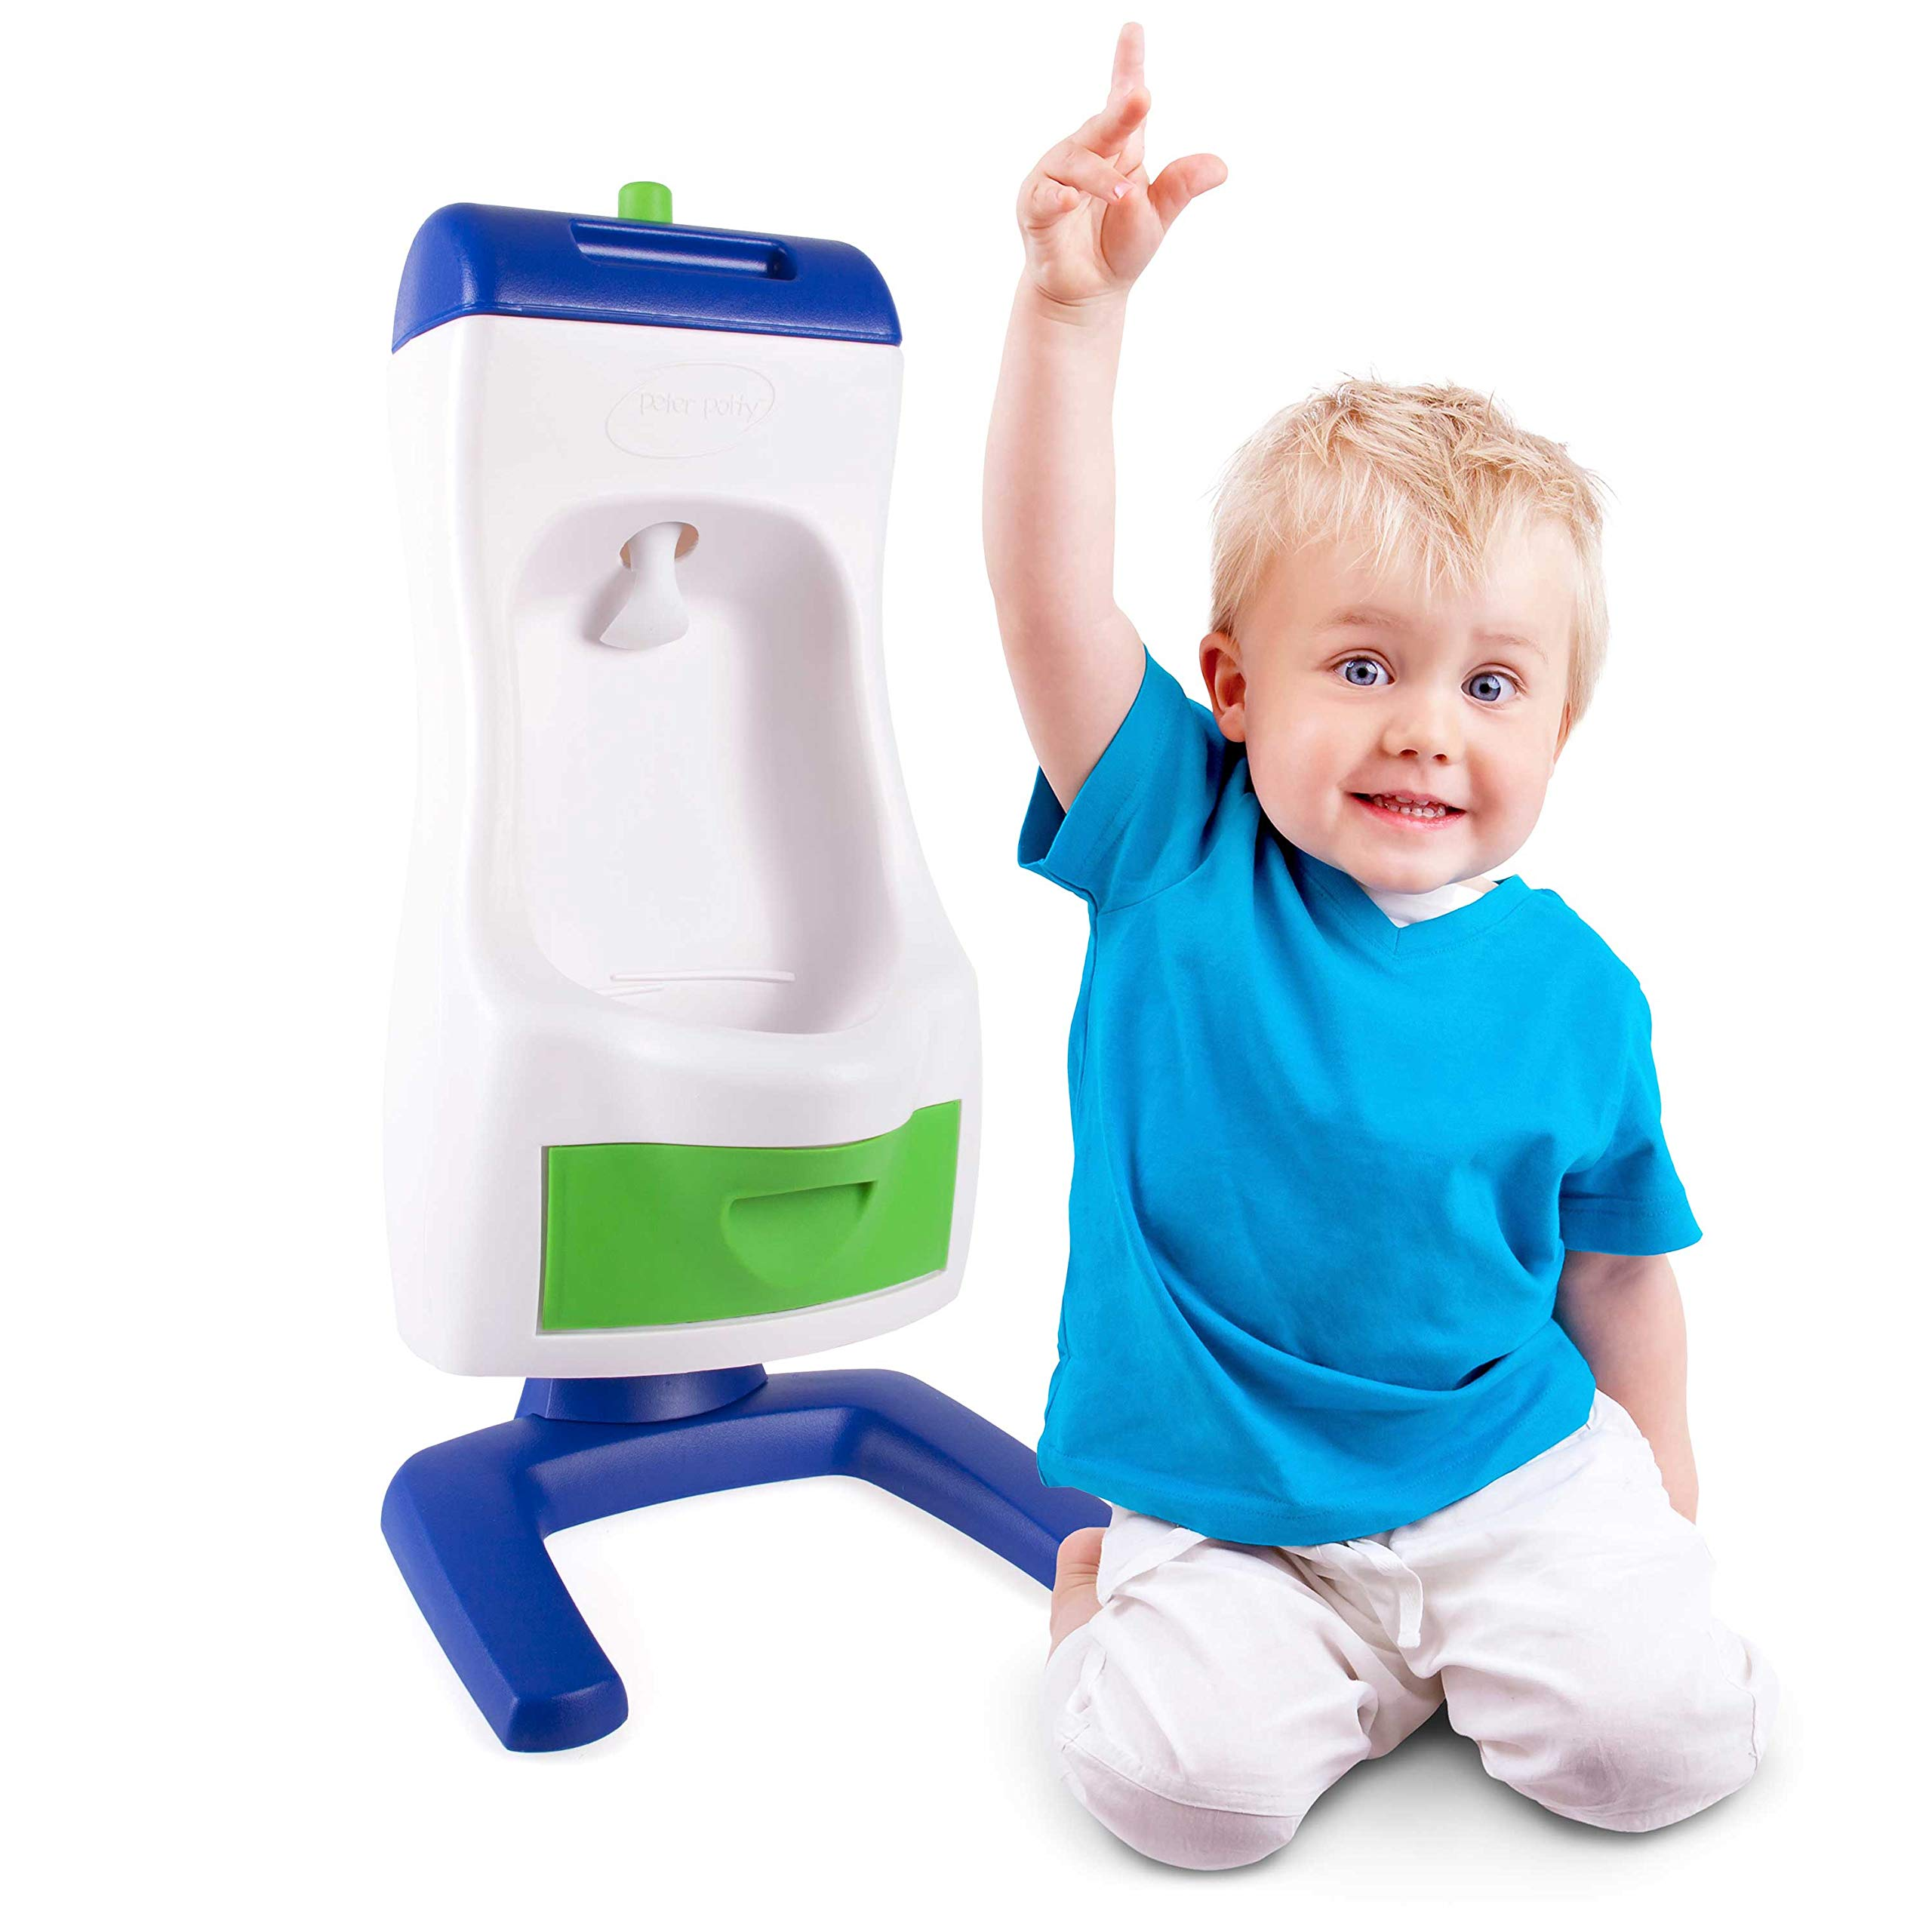 Peter Potty Flushable Toddler Urinal The Easiest Way To Potty Train by Grow'n Up